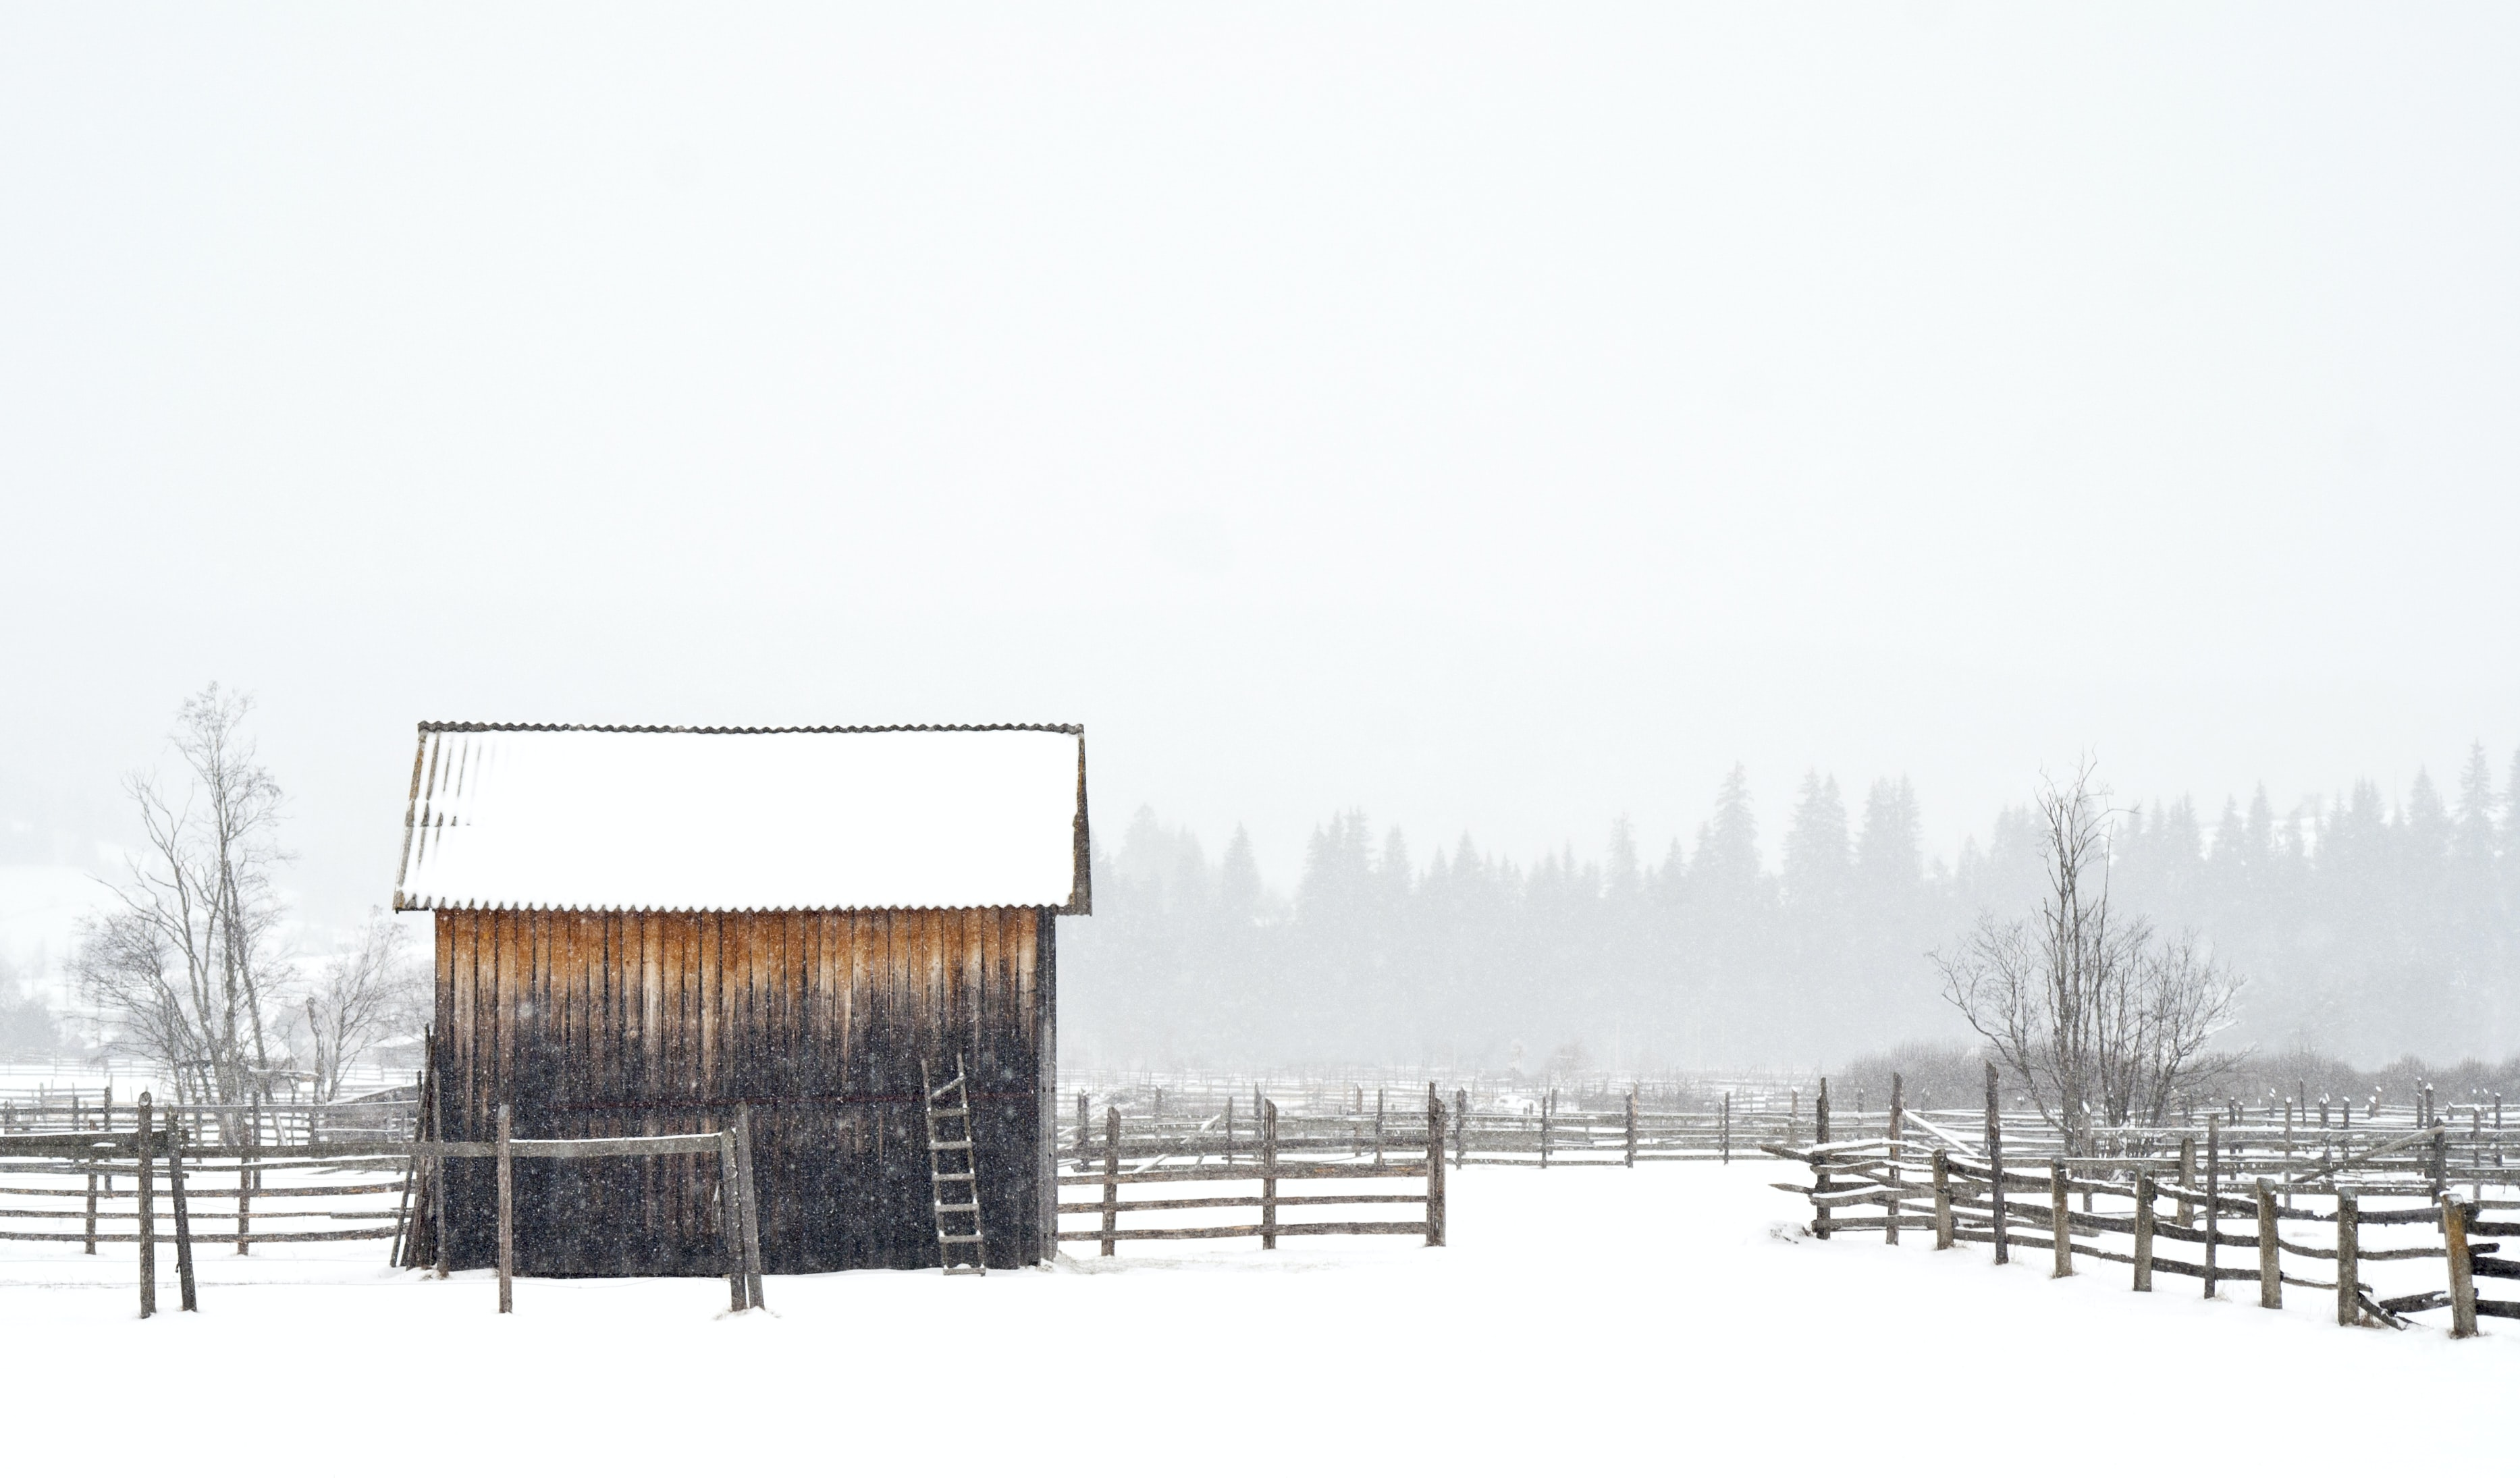 A snow covered barn stands tall on a farm during winter